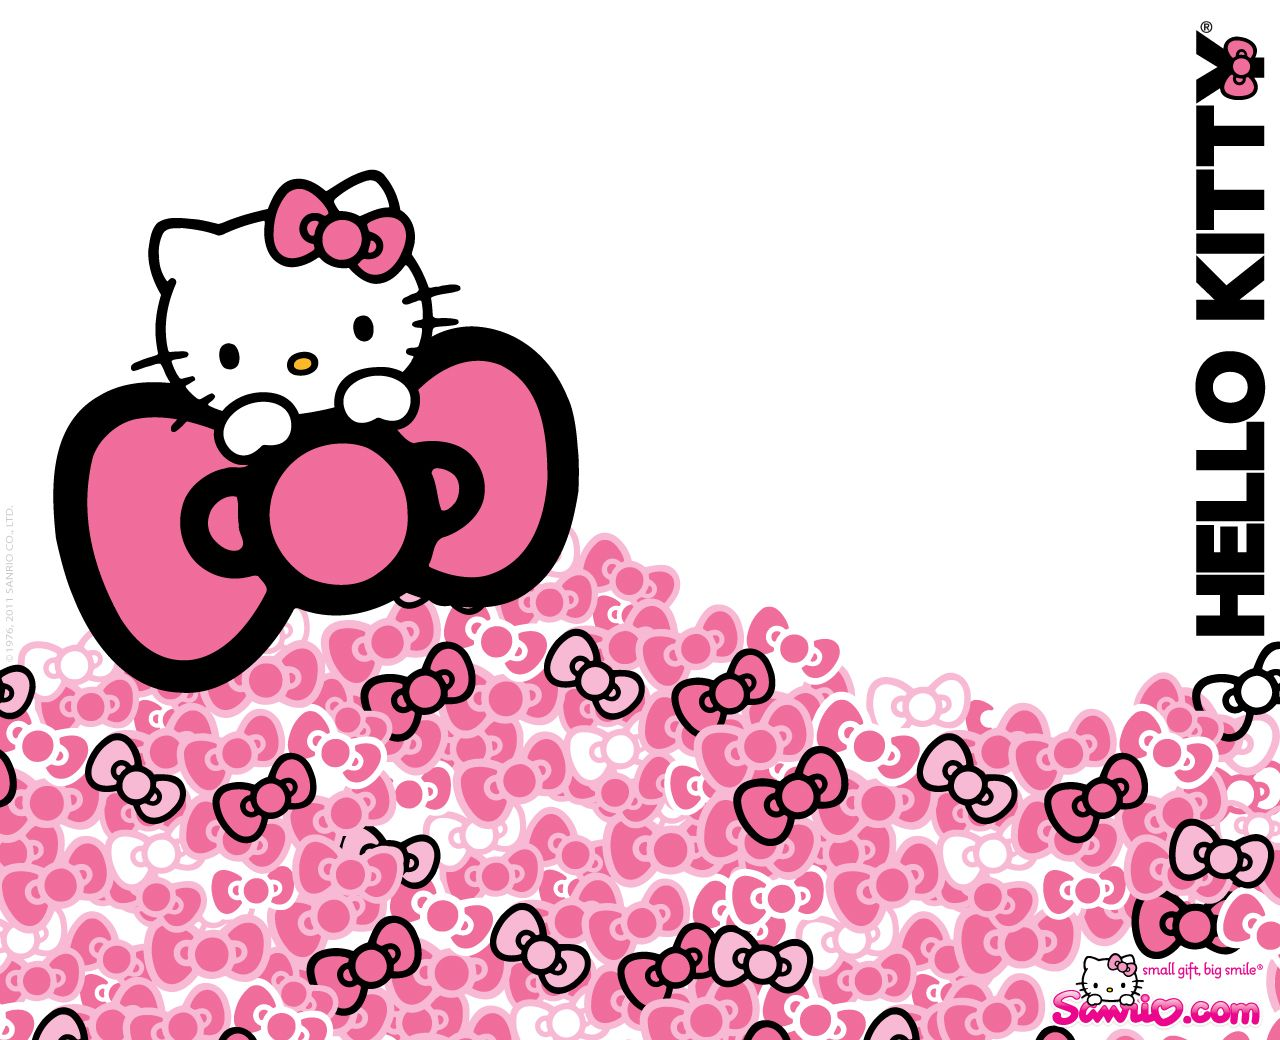 The Cute Little Cat All In Pink Hello Kitty Backgrounds Hello Kitty Wallpaper Hello Kitty Tumblr